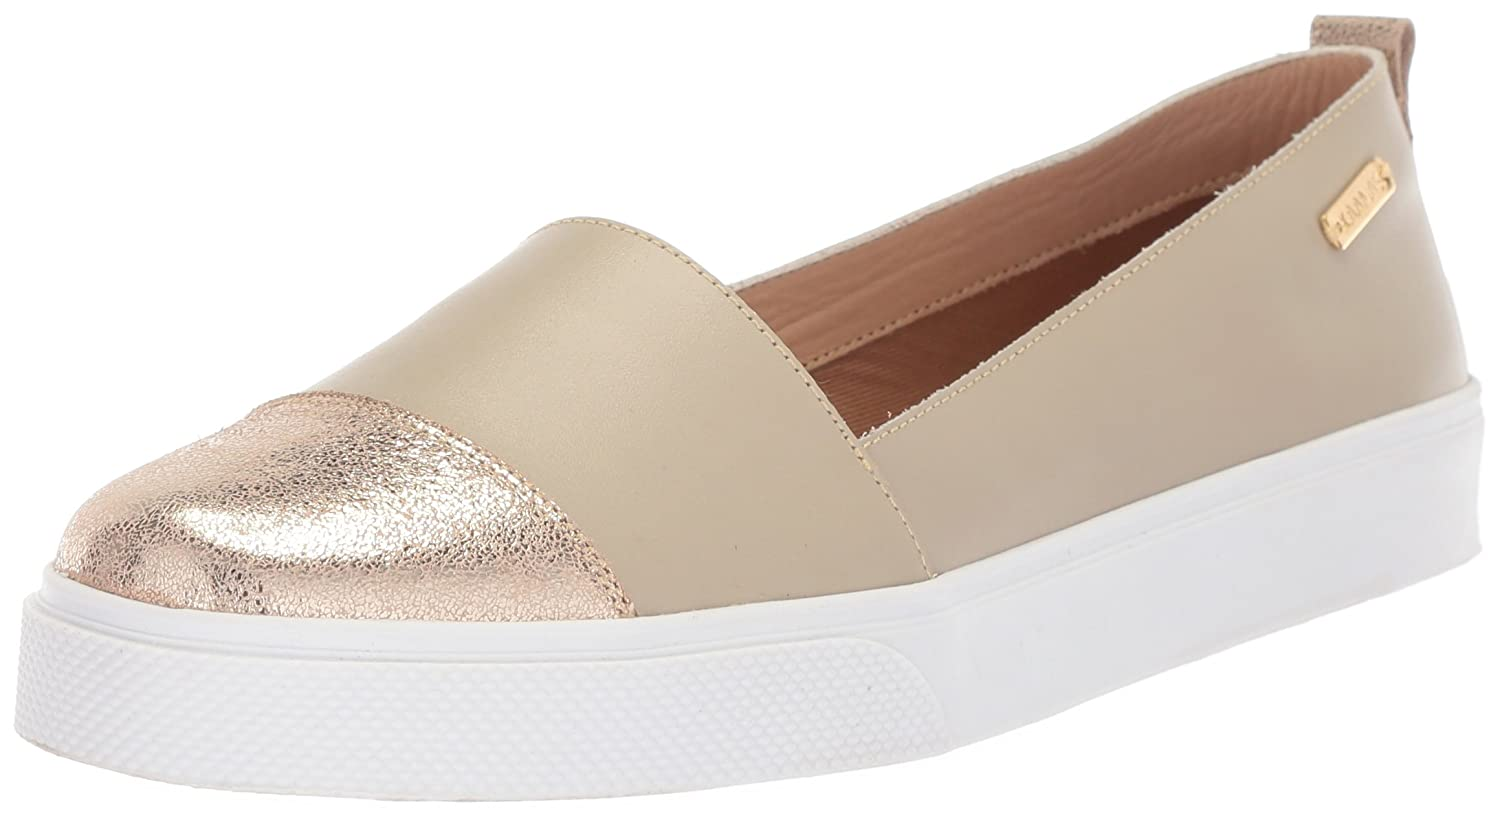 KAANAS Women's Serengeti Fashion Shoe B076FKNWM8 Slip On Casual Sneaker B076FKNWM8 Shoe 9 B(M) US|Cream Metallic 0aac52